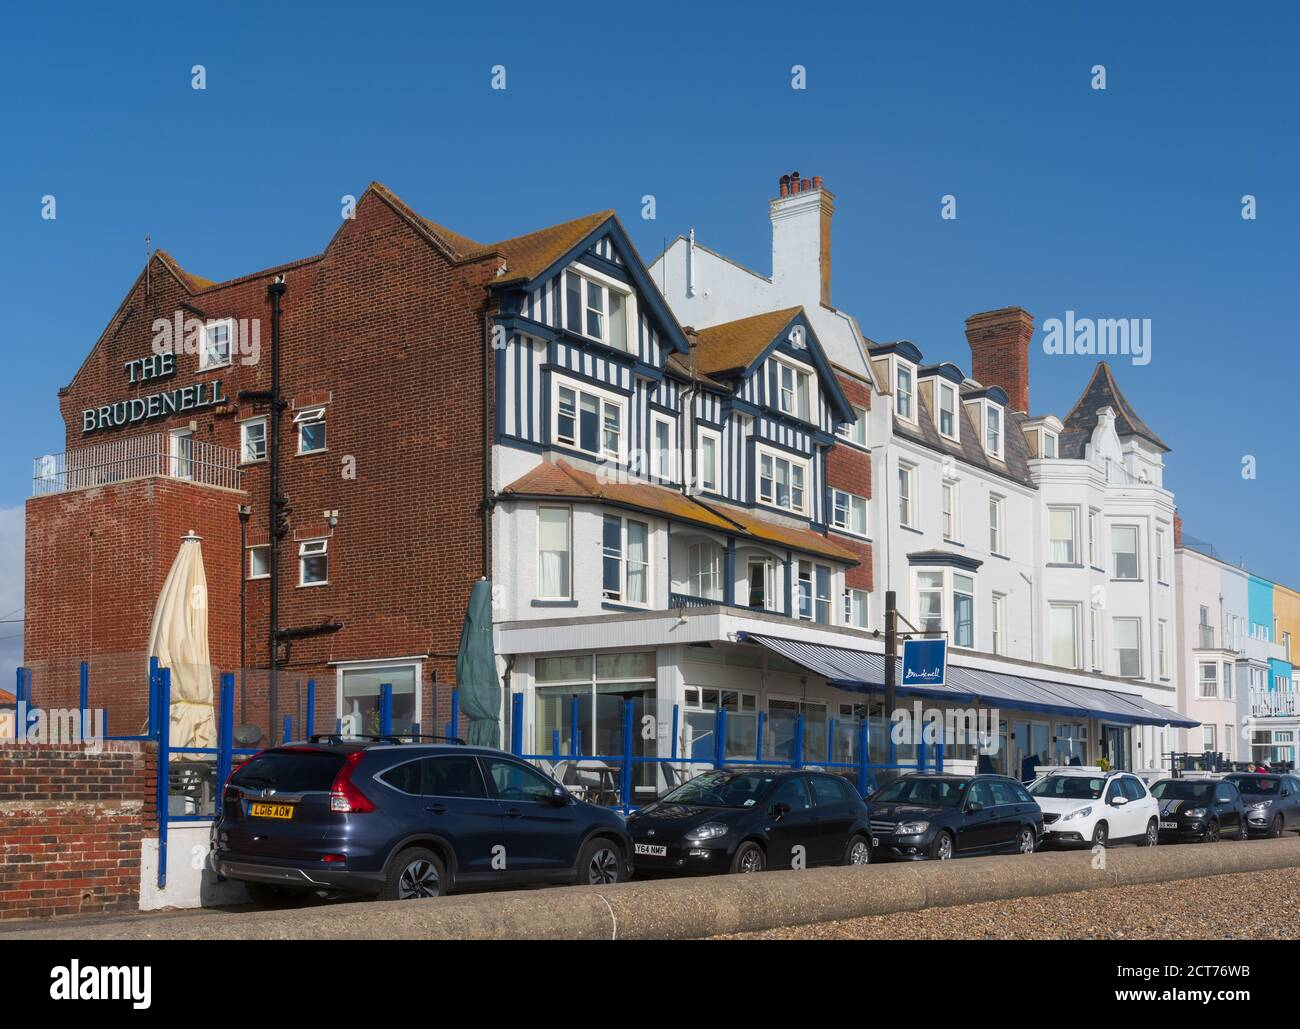 Aldeburgh, Suffolk. UK. September 2020. Exterior of The Brudenell Hotel on Crag Path. Stock Photo